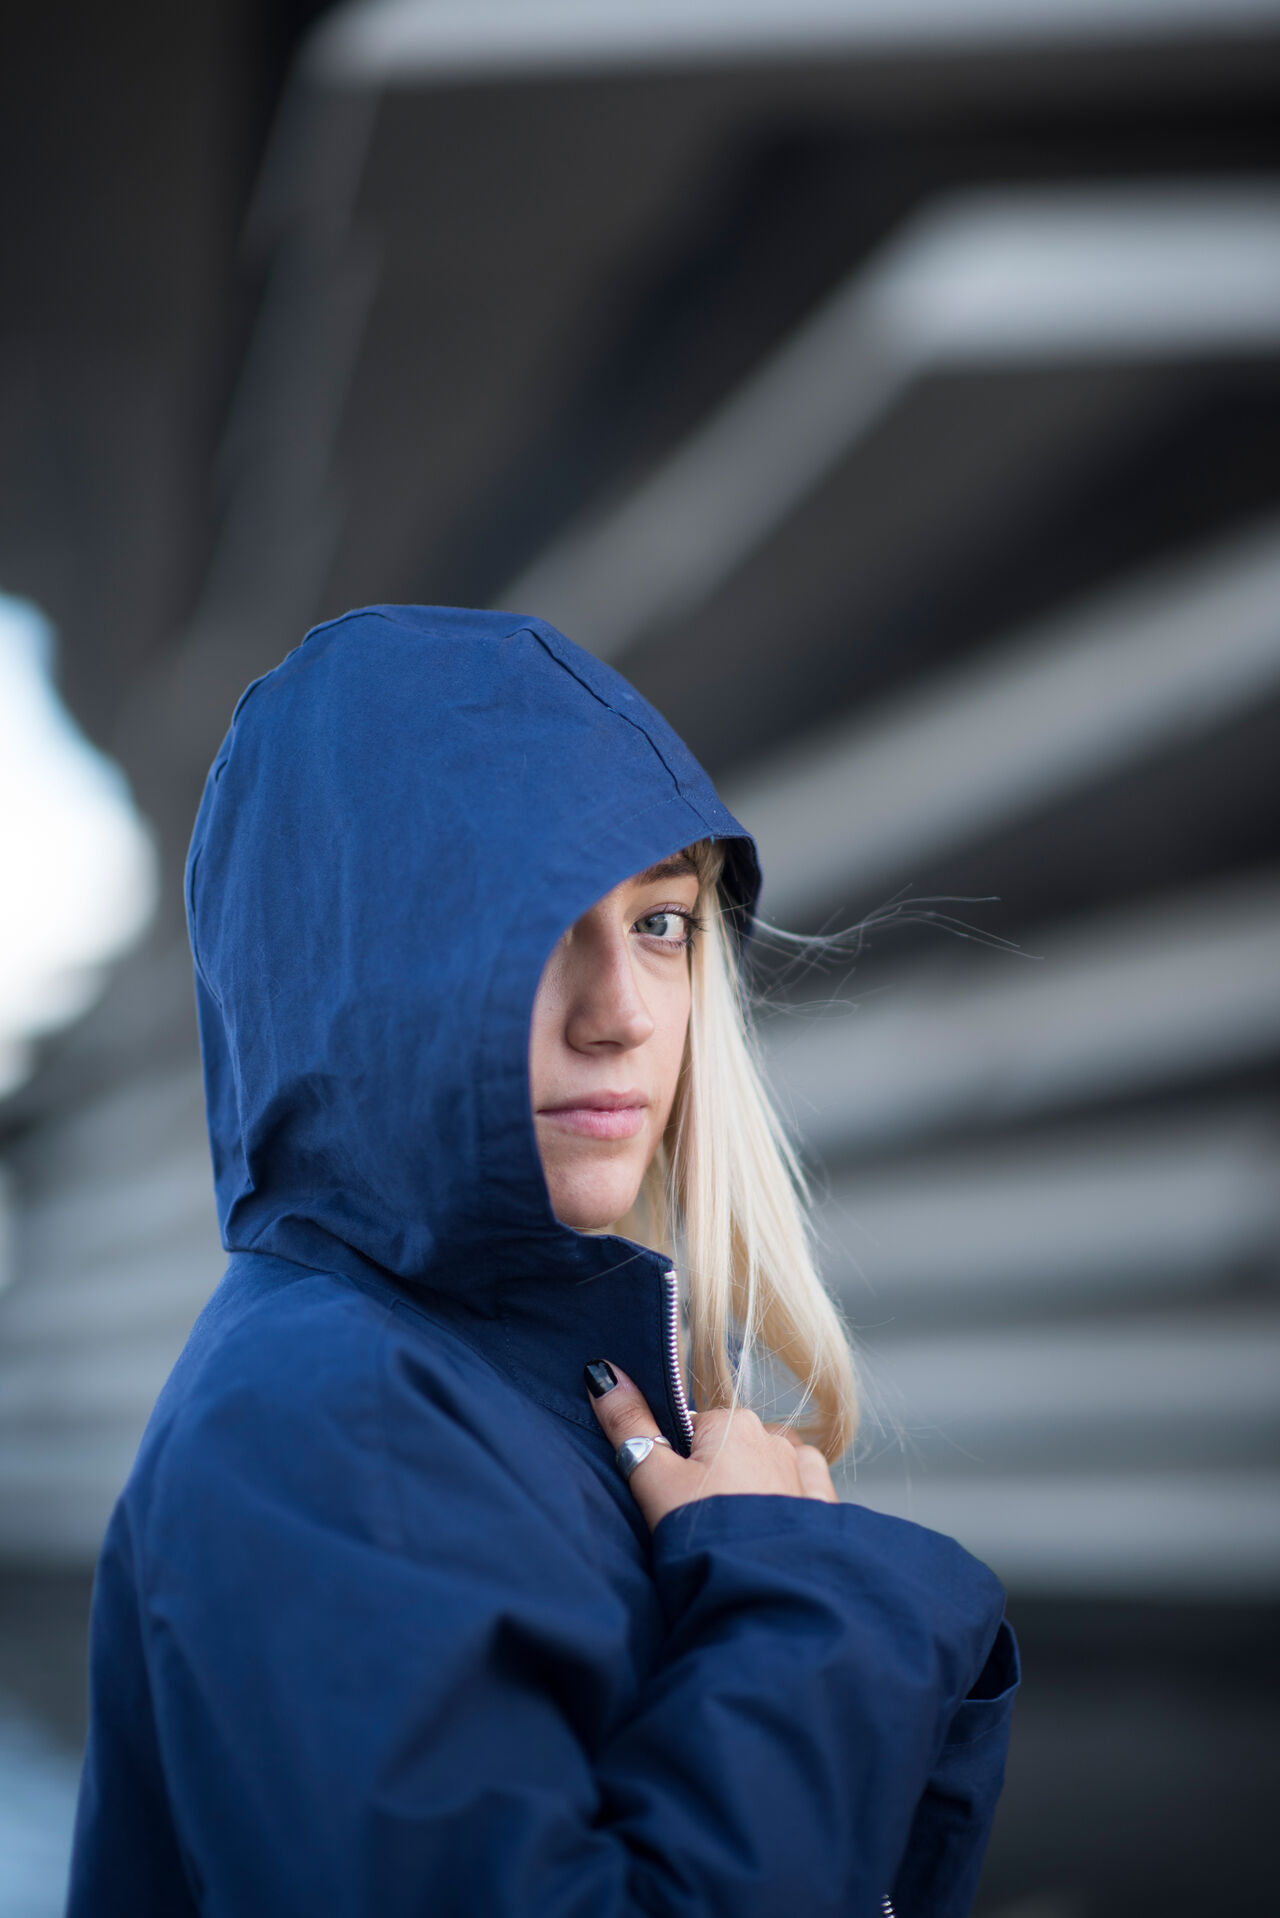 A person posing in front of V&A Dundee wearing a navy raincoat. She is side-on to the camera and has the hood up, looking sideways at the camera.